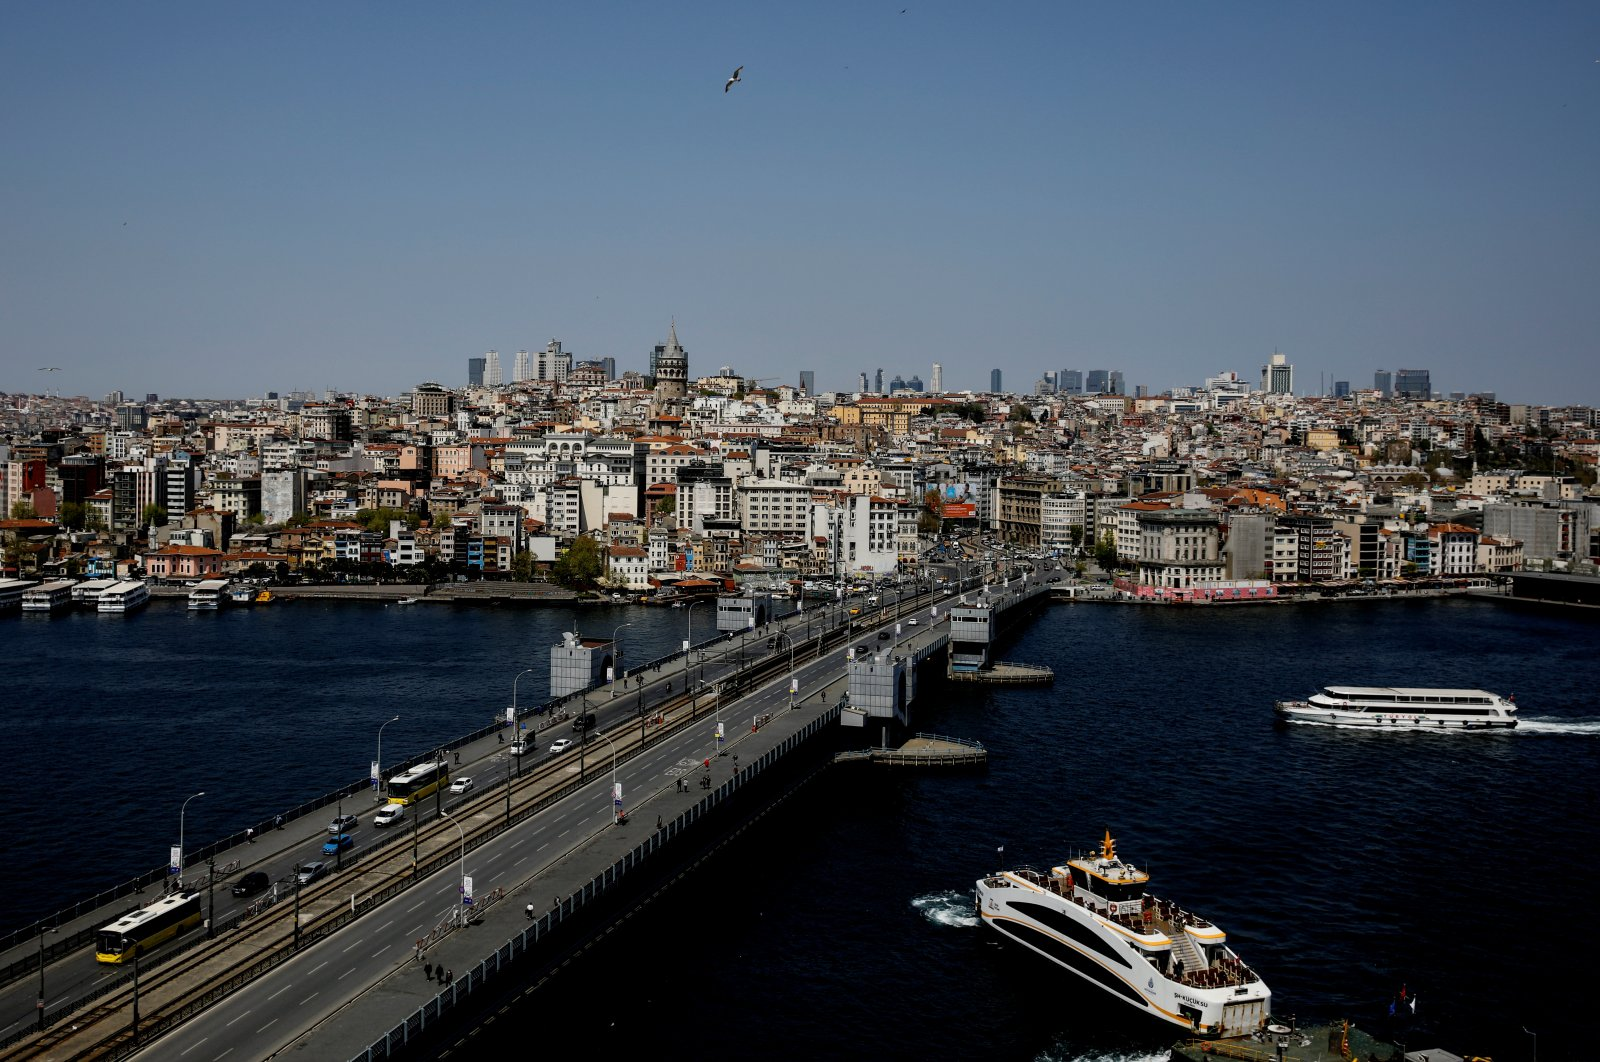 The Galata Bridge and historical Galata Tower are pictured during the outbreak of COVID-19 in Istanbul, Turkey, April 27, 2020. (Reuters Photo)